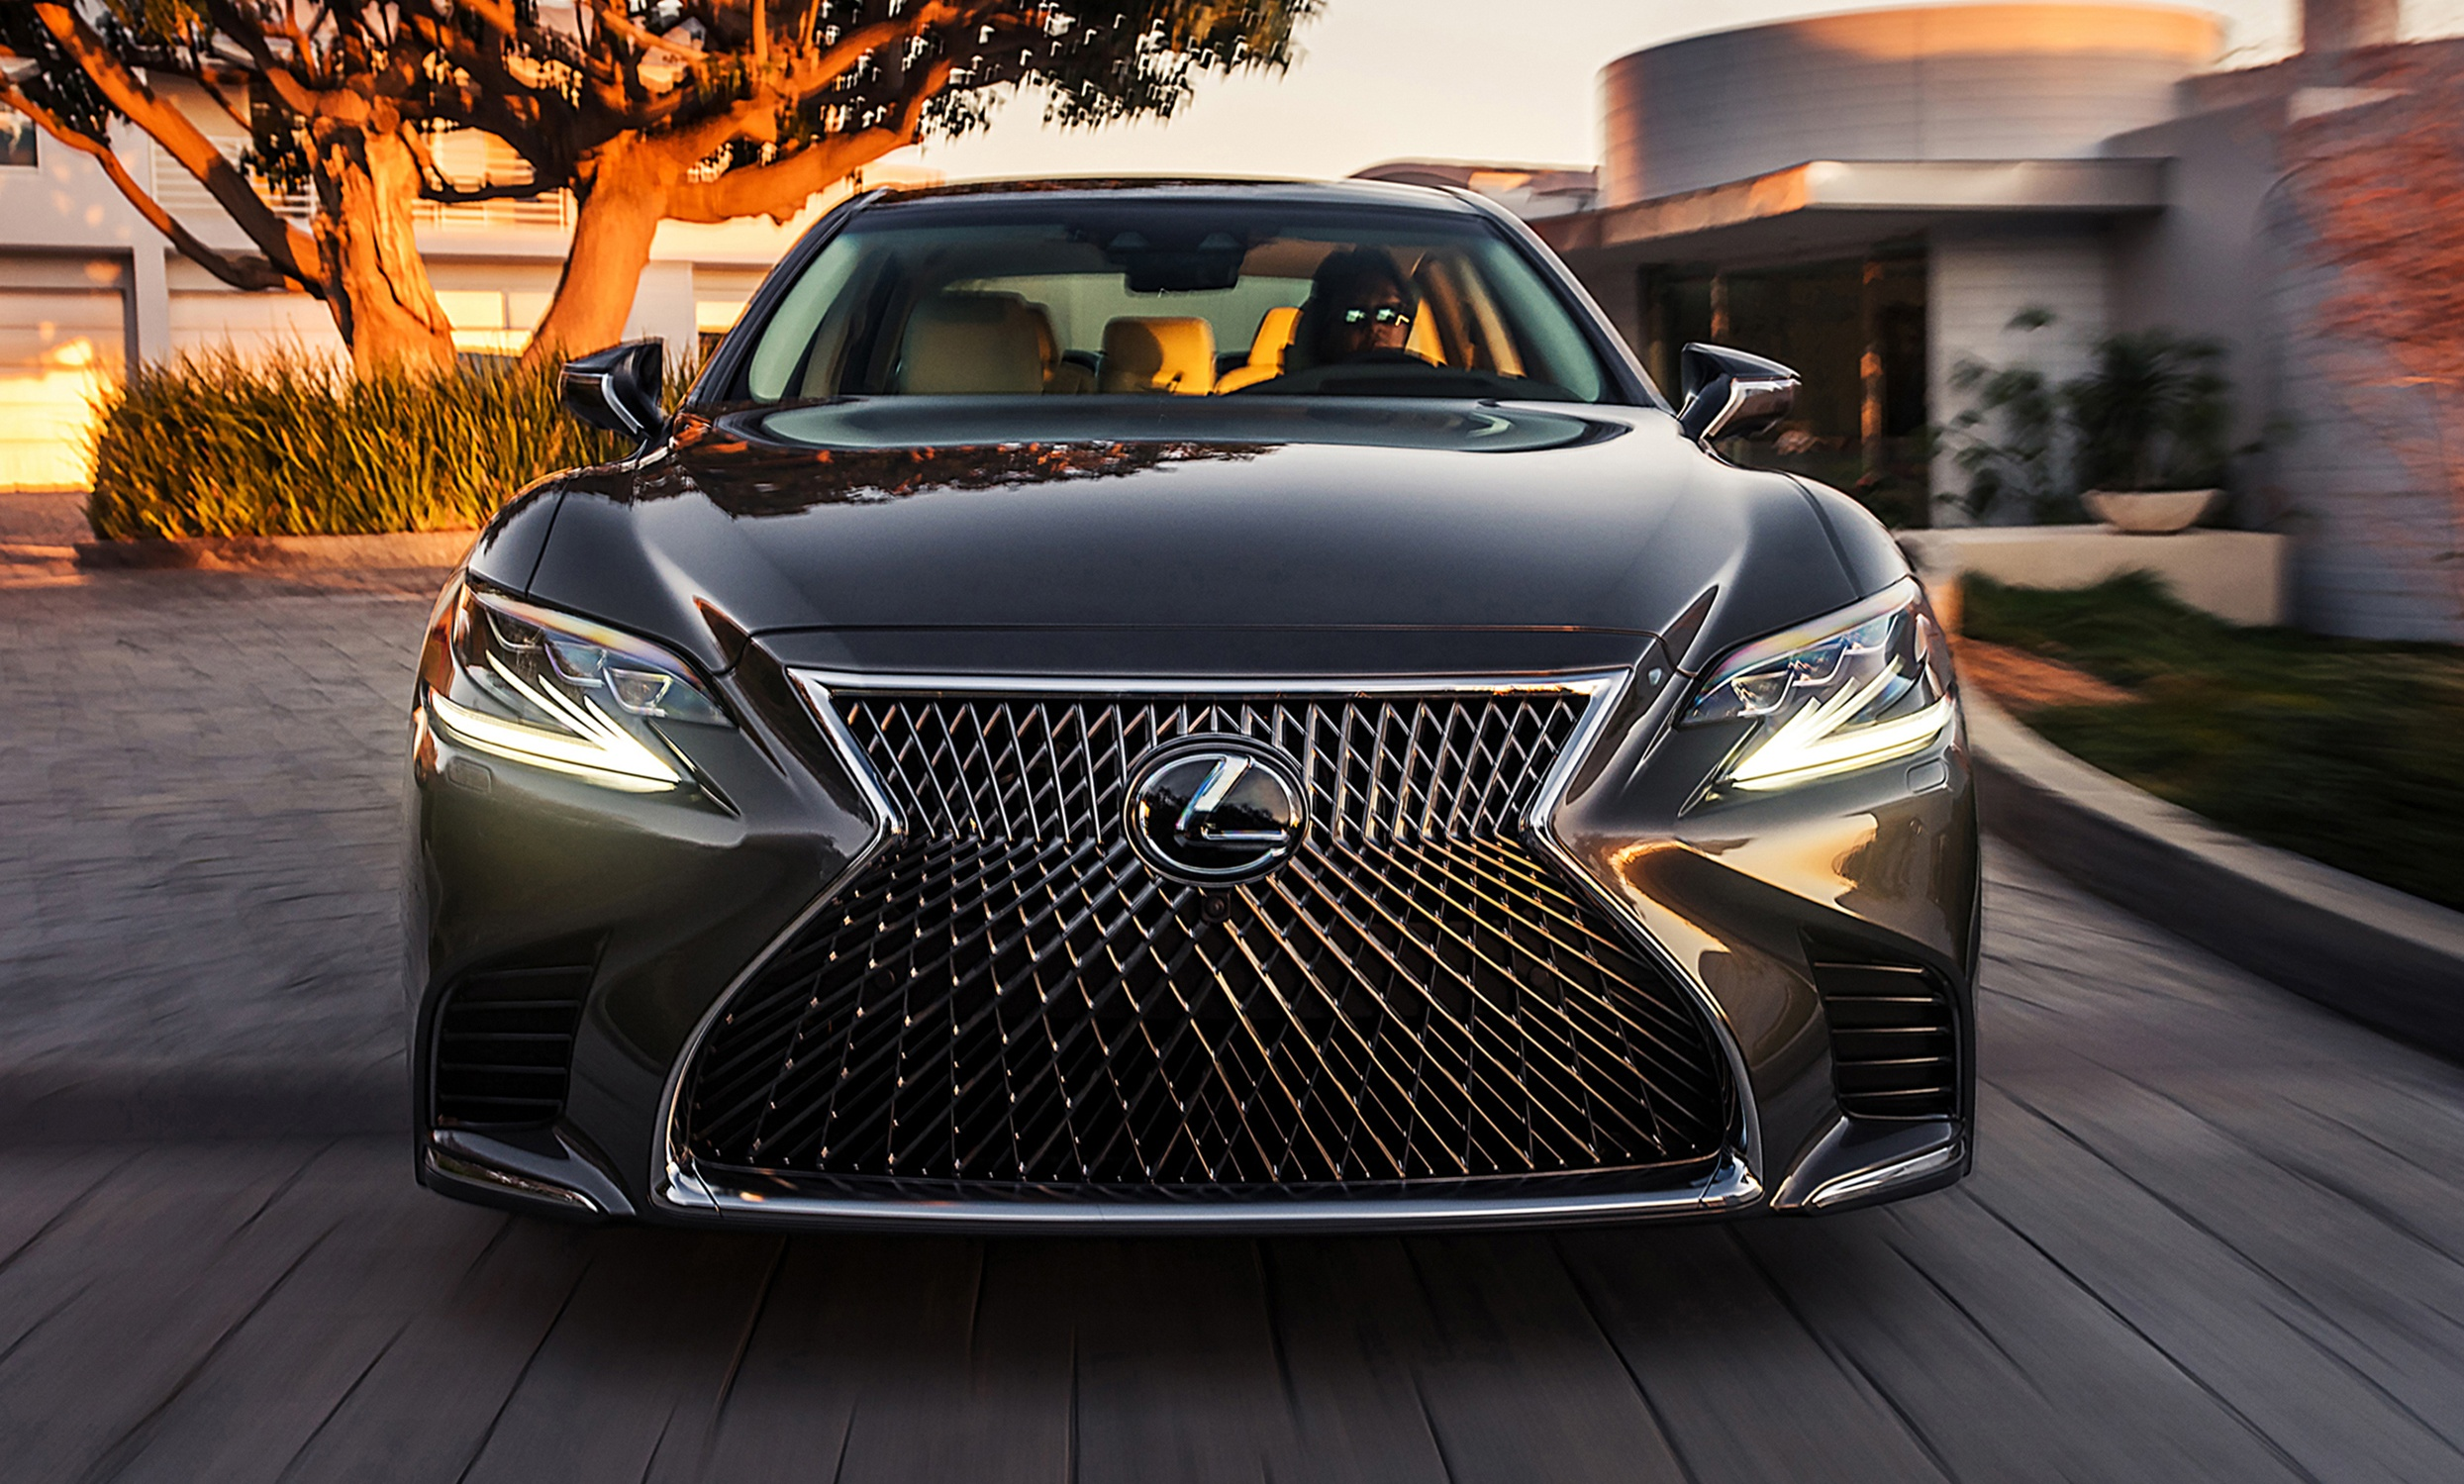 2018 Lexus Ls500h The Sophisticated Sedan For The Younger: Flagship's Safety Systems Detailed